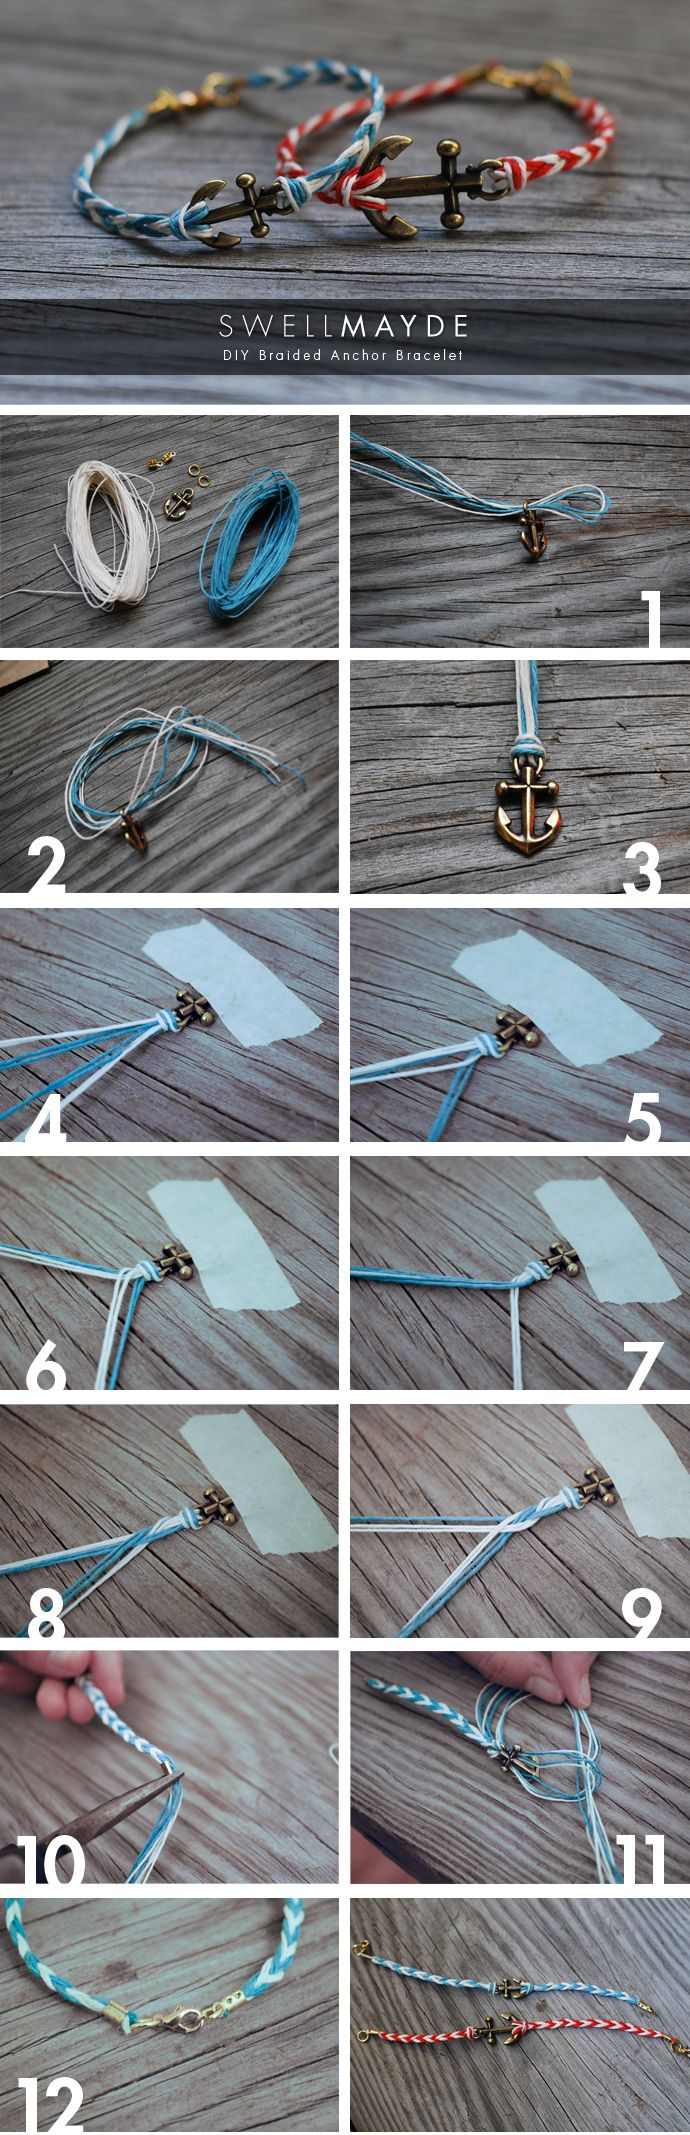 DIY Fishtail Braided Anchor Bracelet